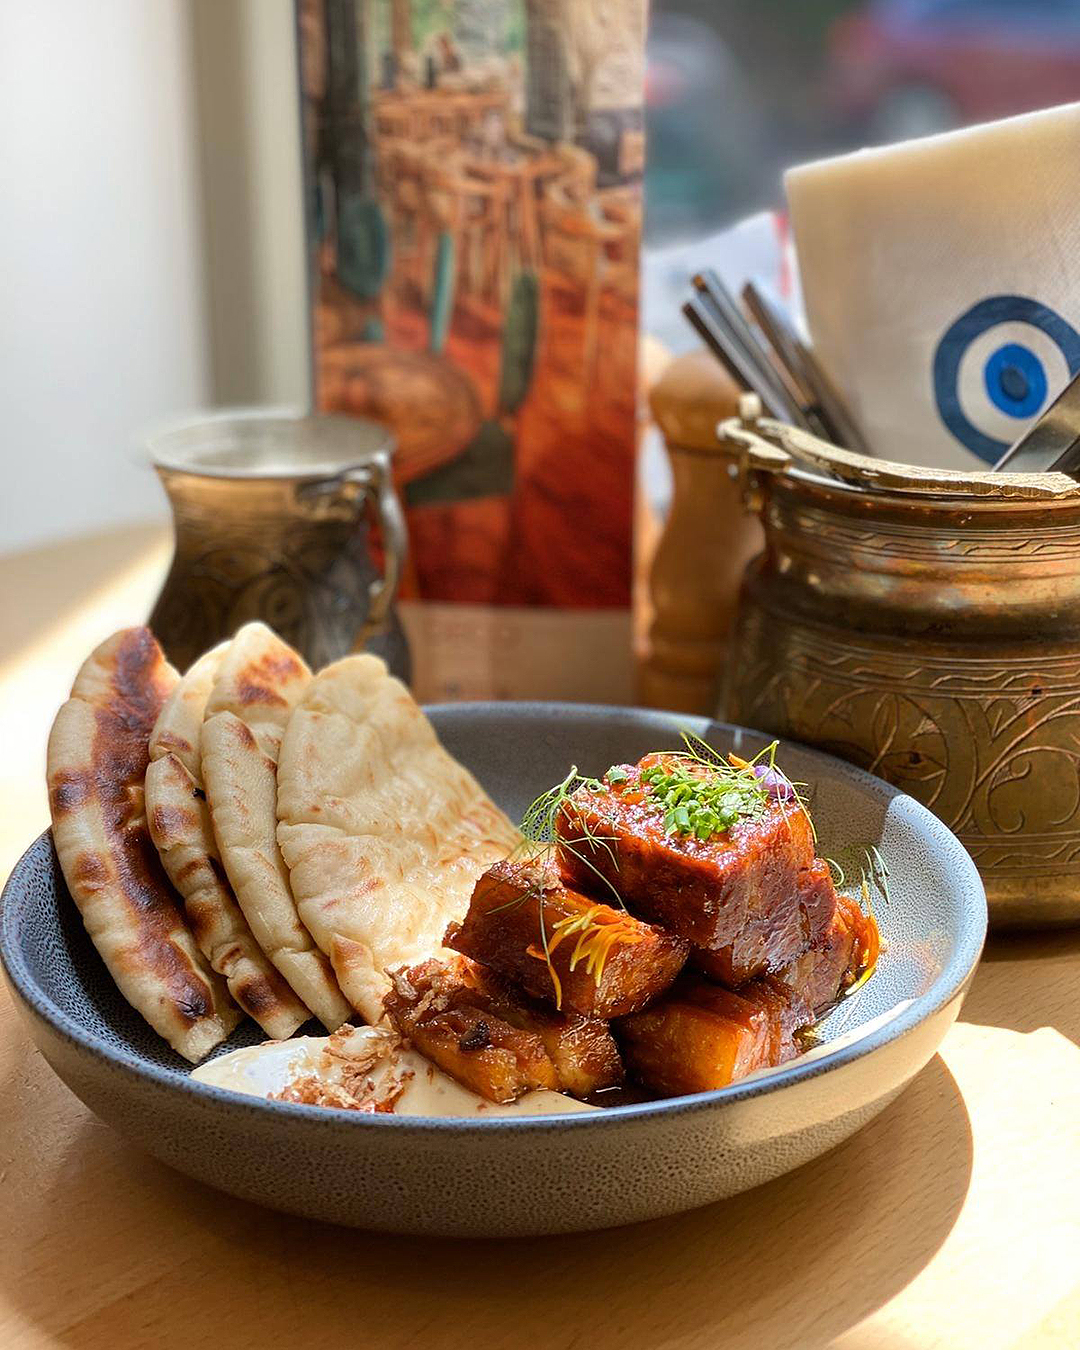 Sticky Pork belly at Deco Eatery